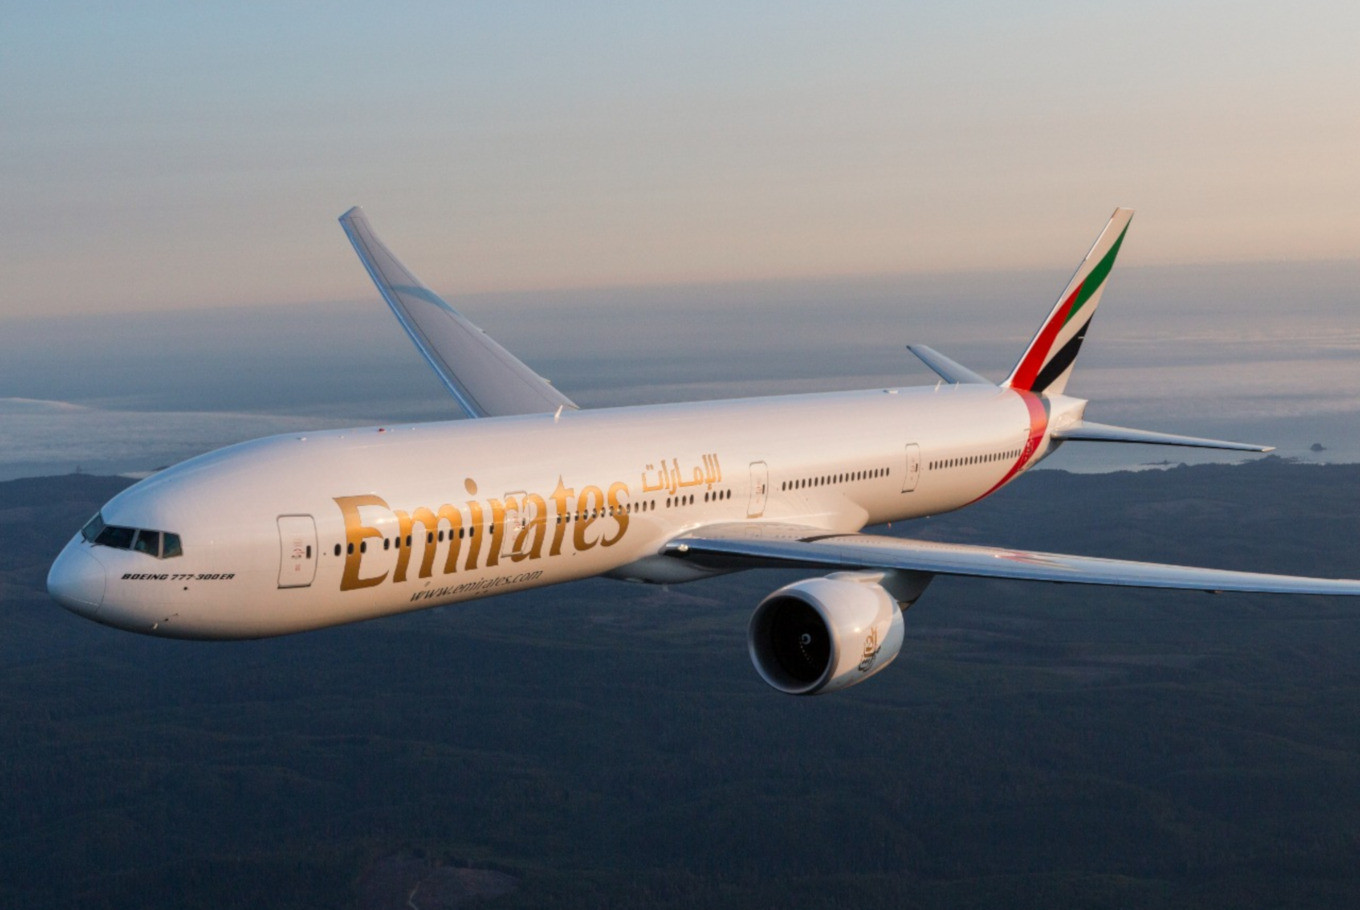 Emirates airline optimistic about steep recovery after COVID-19 vaccine